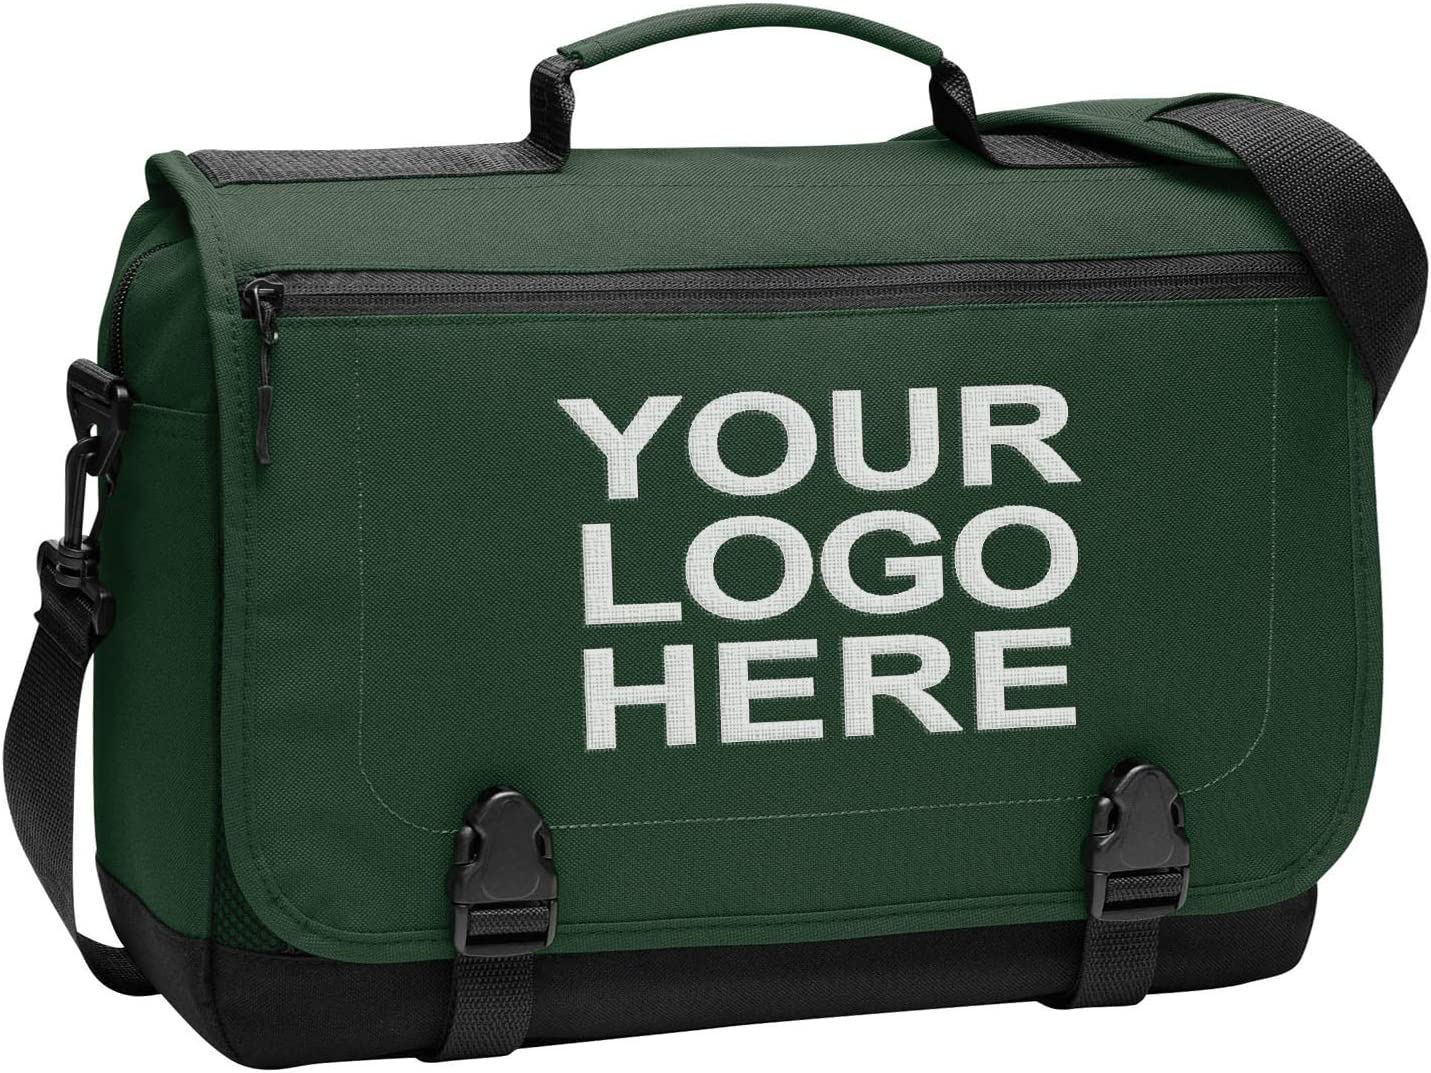 Personalized Messenger Laptop Briefcase - Add Your Embroidered Text, Monogram or Logo - Custom Shoulder Bag